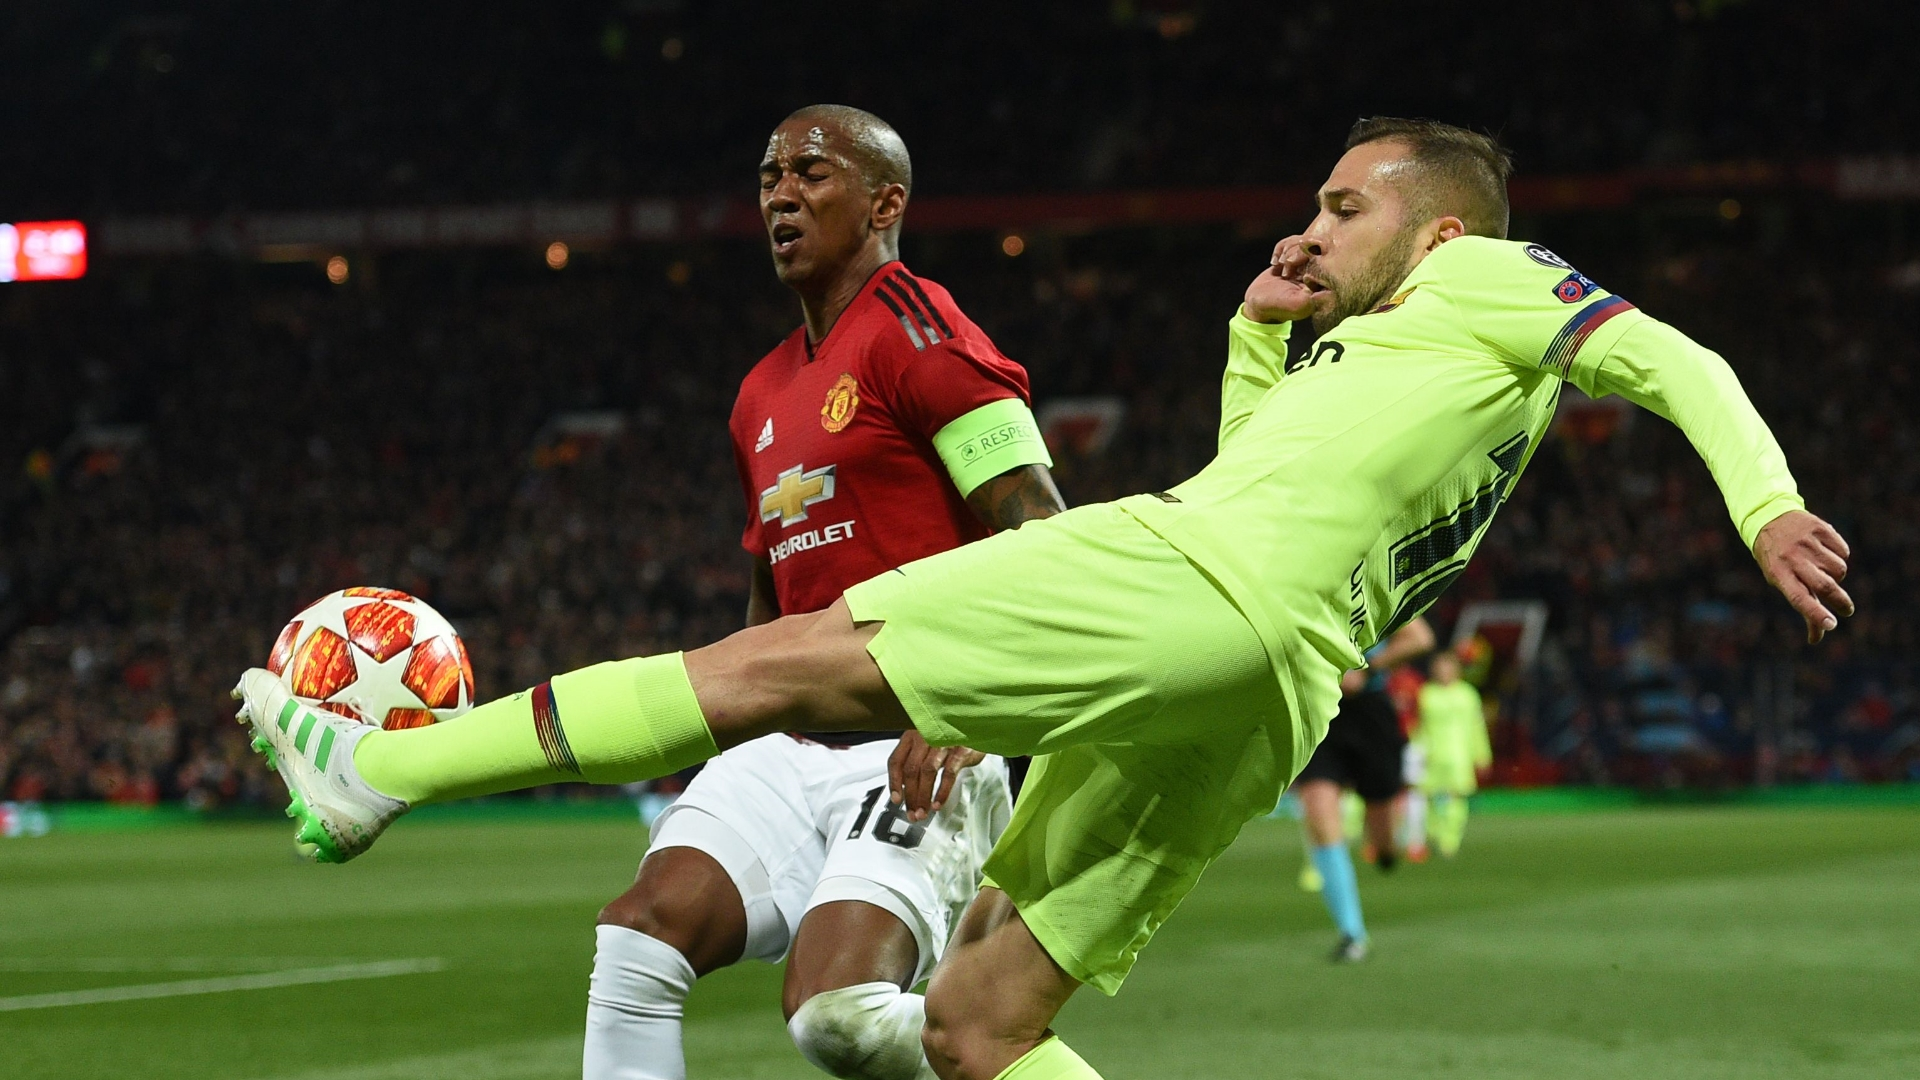 Jordi Alba, Ashley Young, Man Utd vs Barcelona, UCL 2018-19